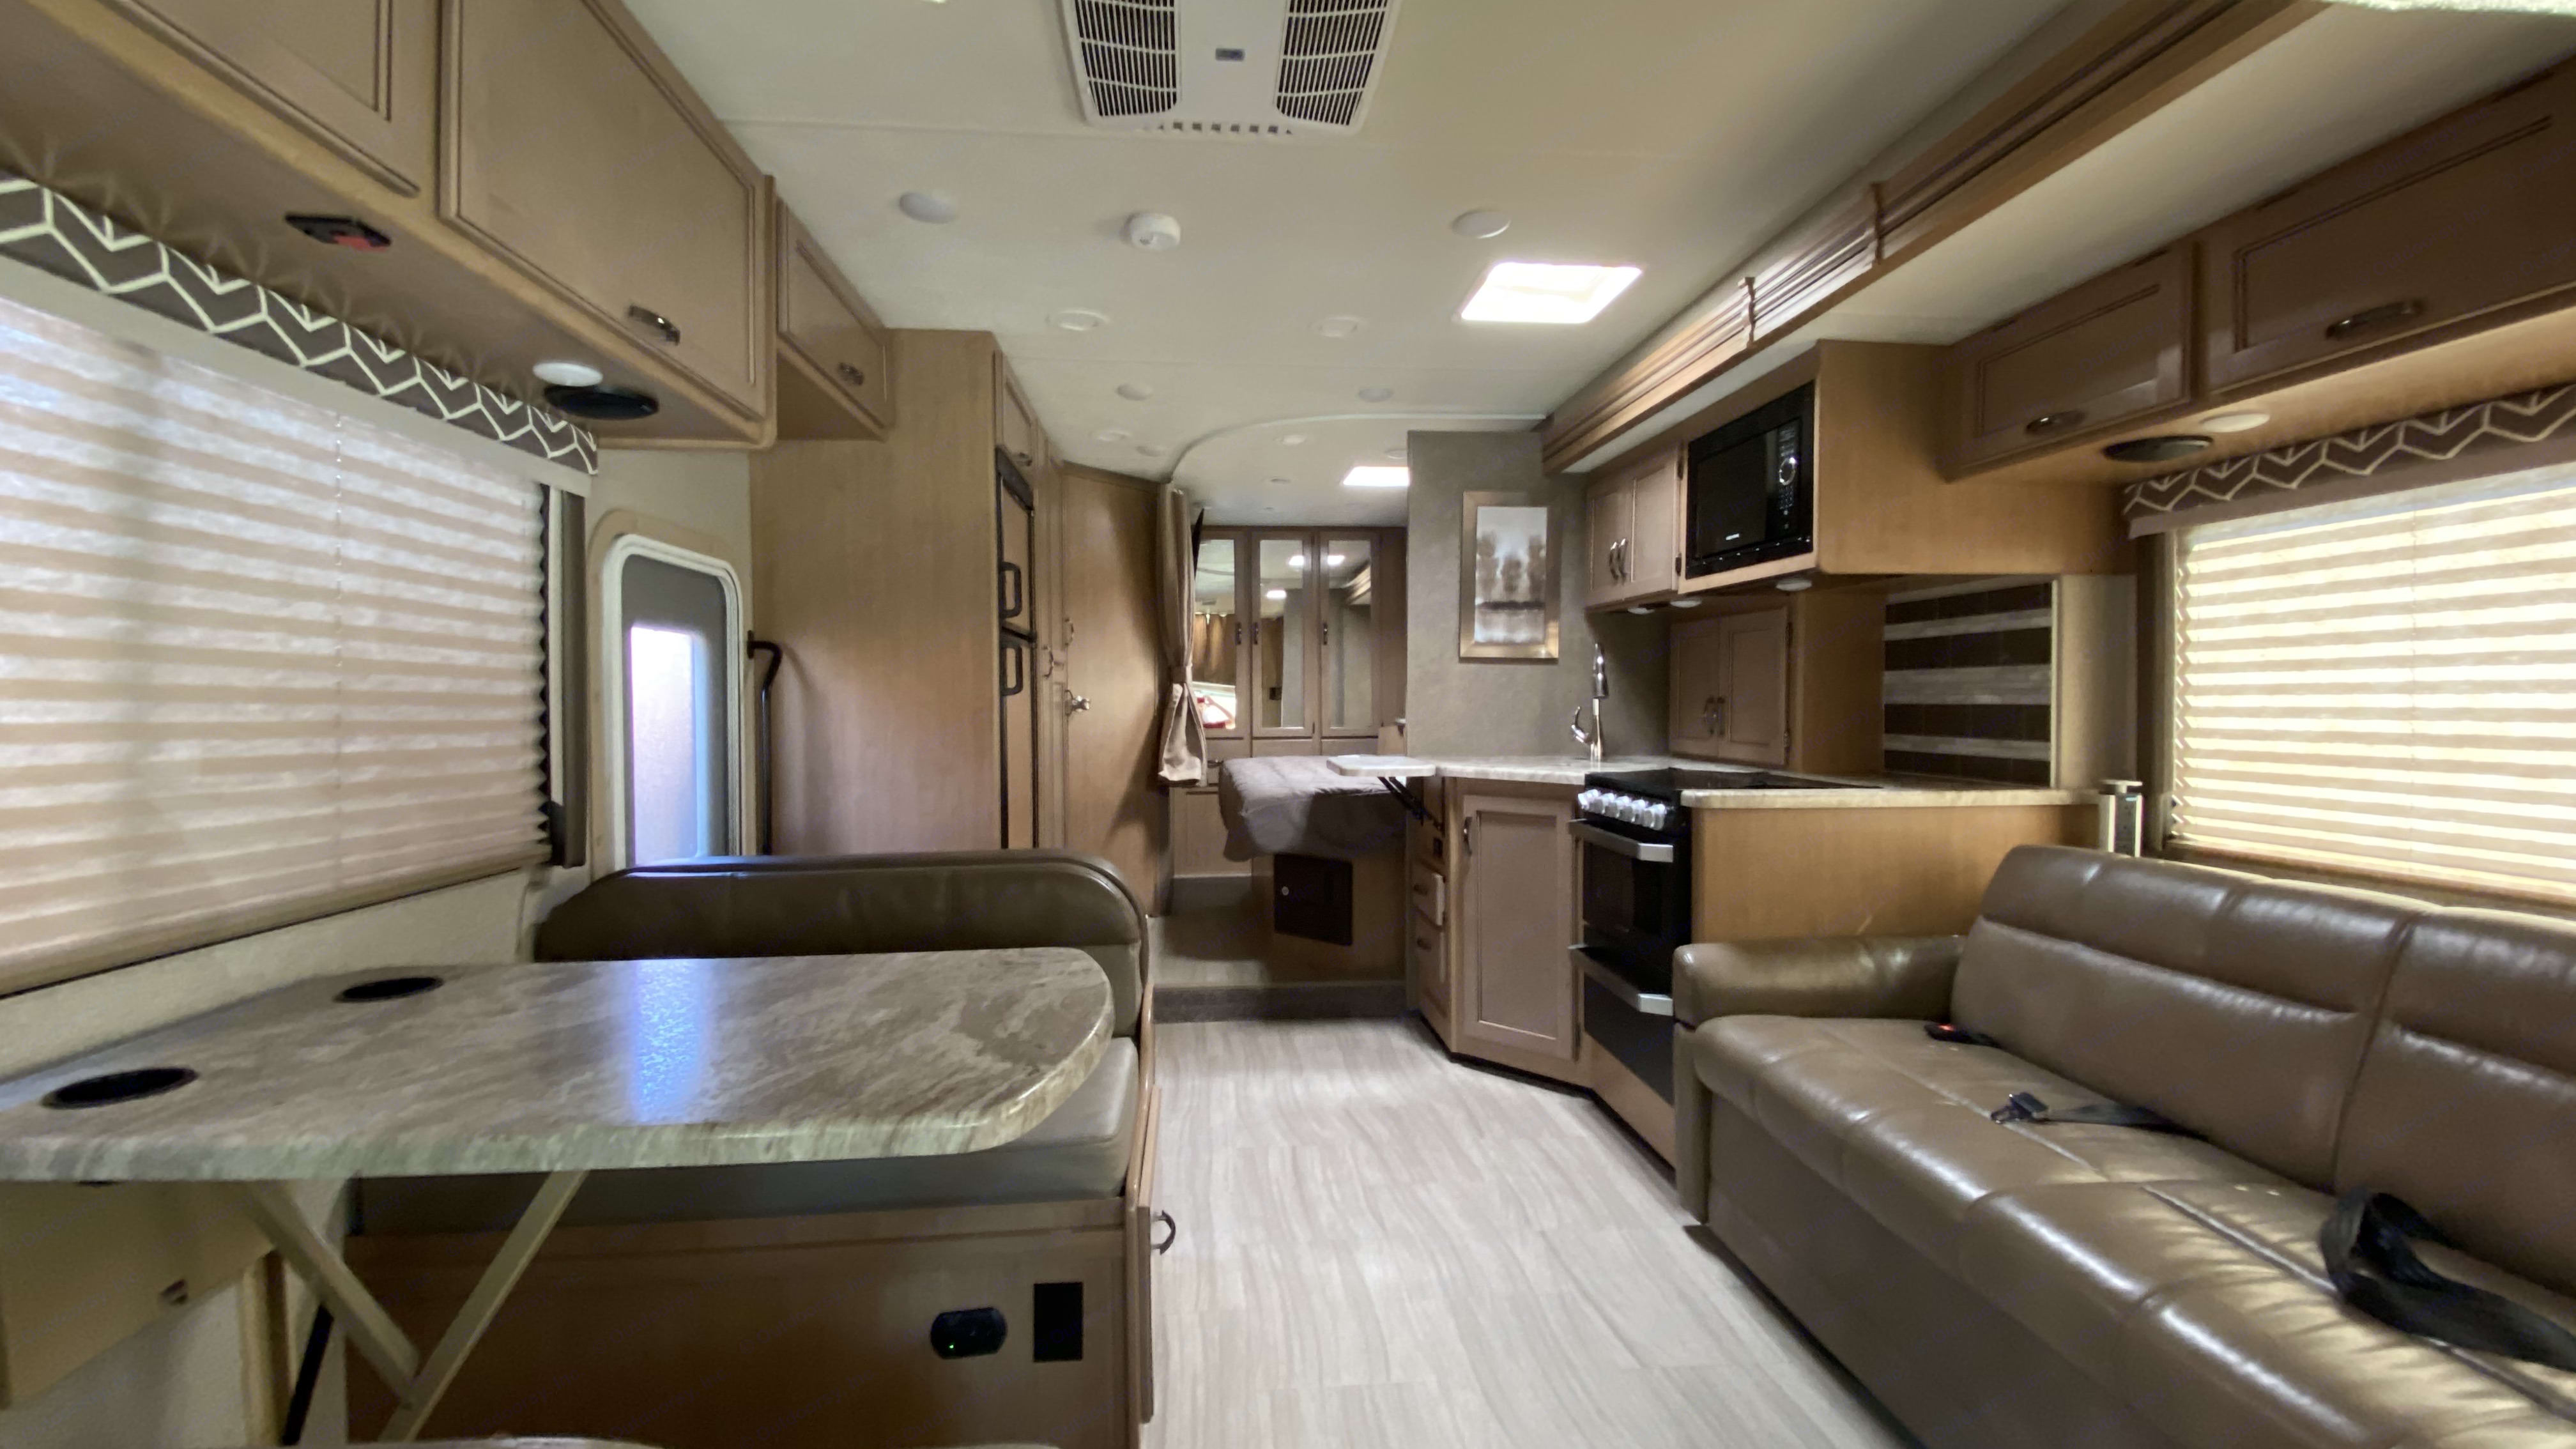 Largest open area of any sub-30ft RV with a 3ft slide out of the entire driver-side.. Thor Motor Coach Daybreak 2020